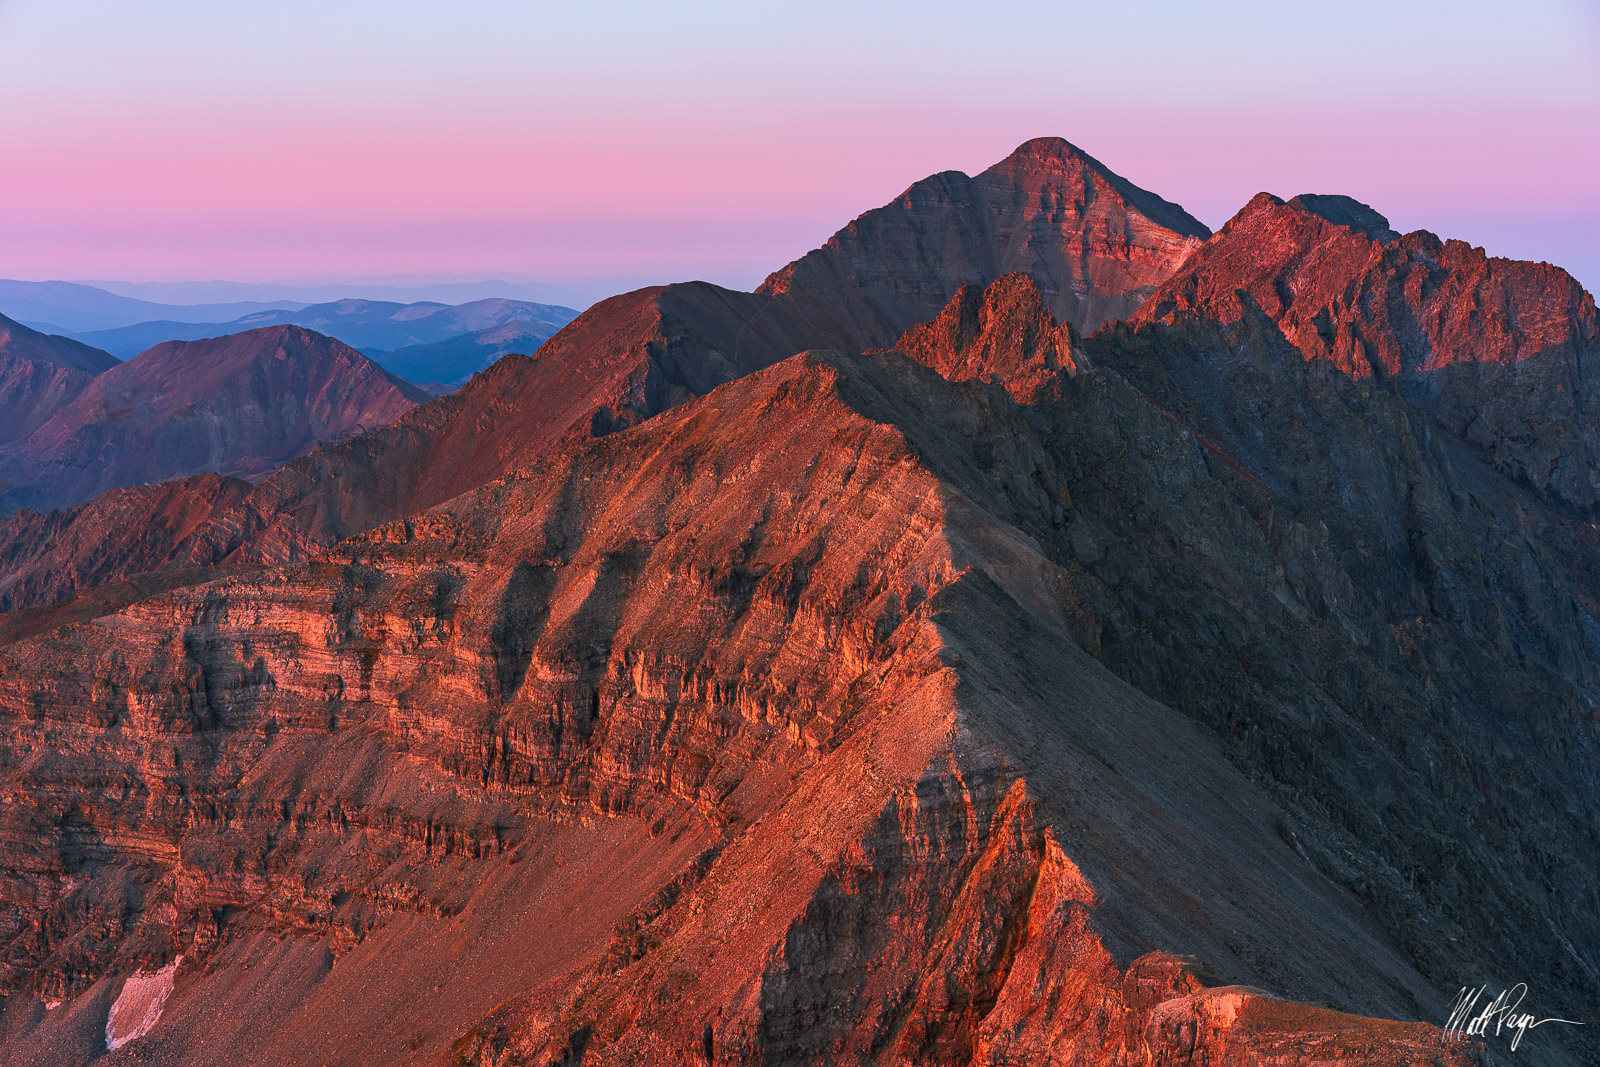 13ers, 14er, 14ers, Belt of Venus, Castle Peak, Cathedral Peak, Climb, Colorado, Conundrum Peak, Elk Mountains, Landscape, Mountains, Sunrise, photo